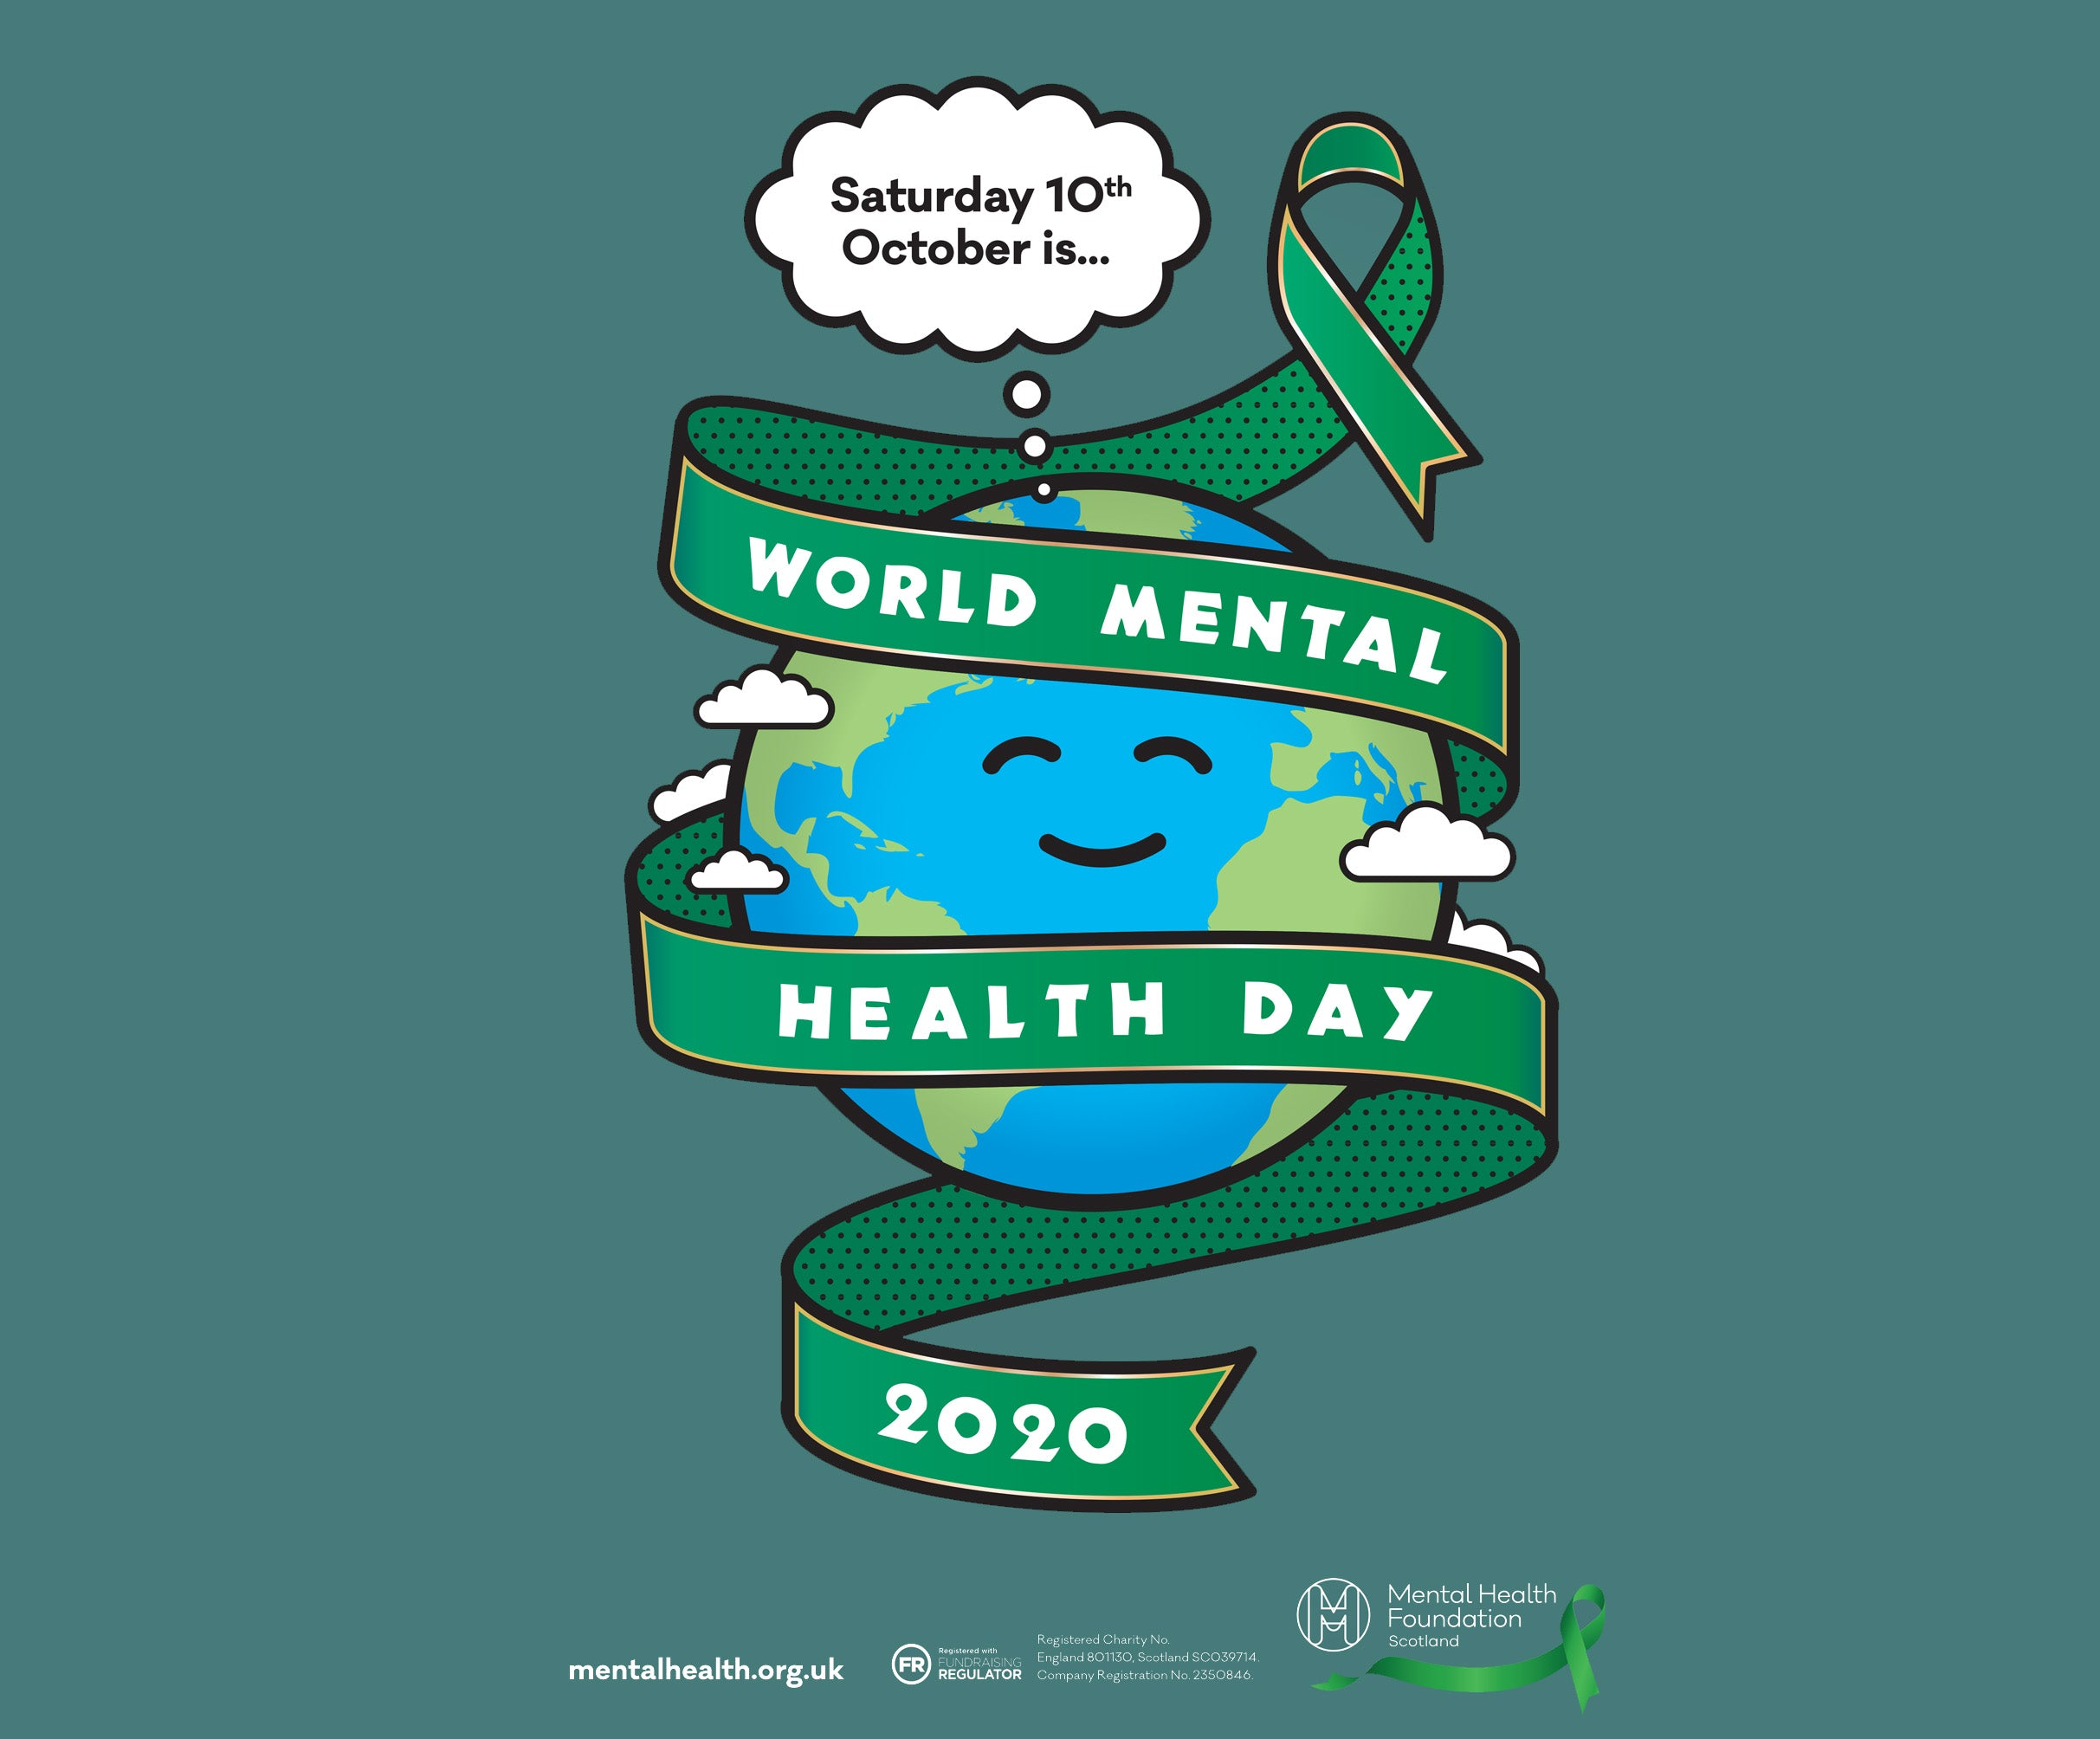 Mental Health Awareness Day 2020